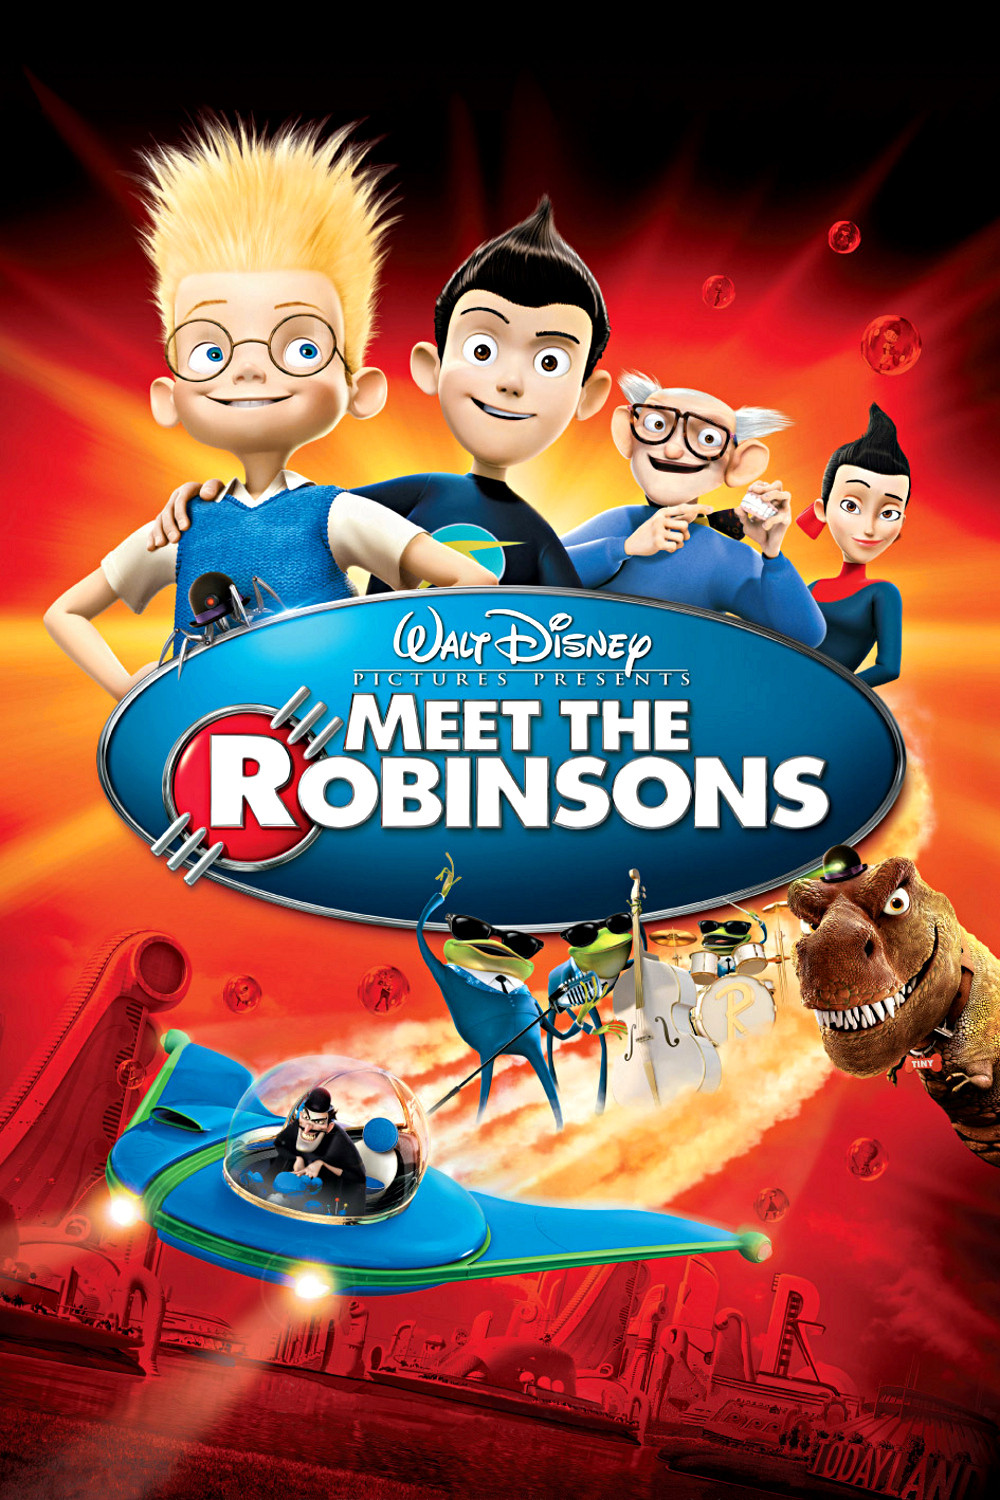 meet the robinsons 2013 movies